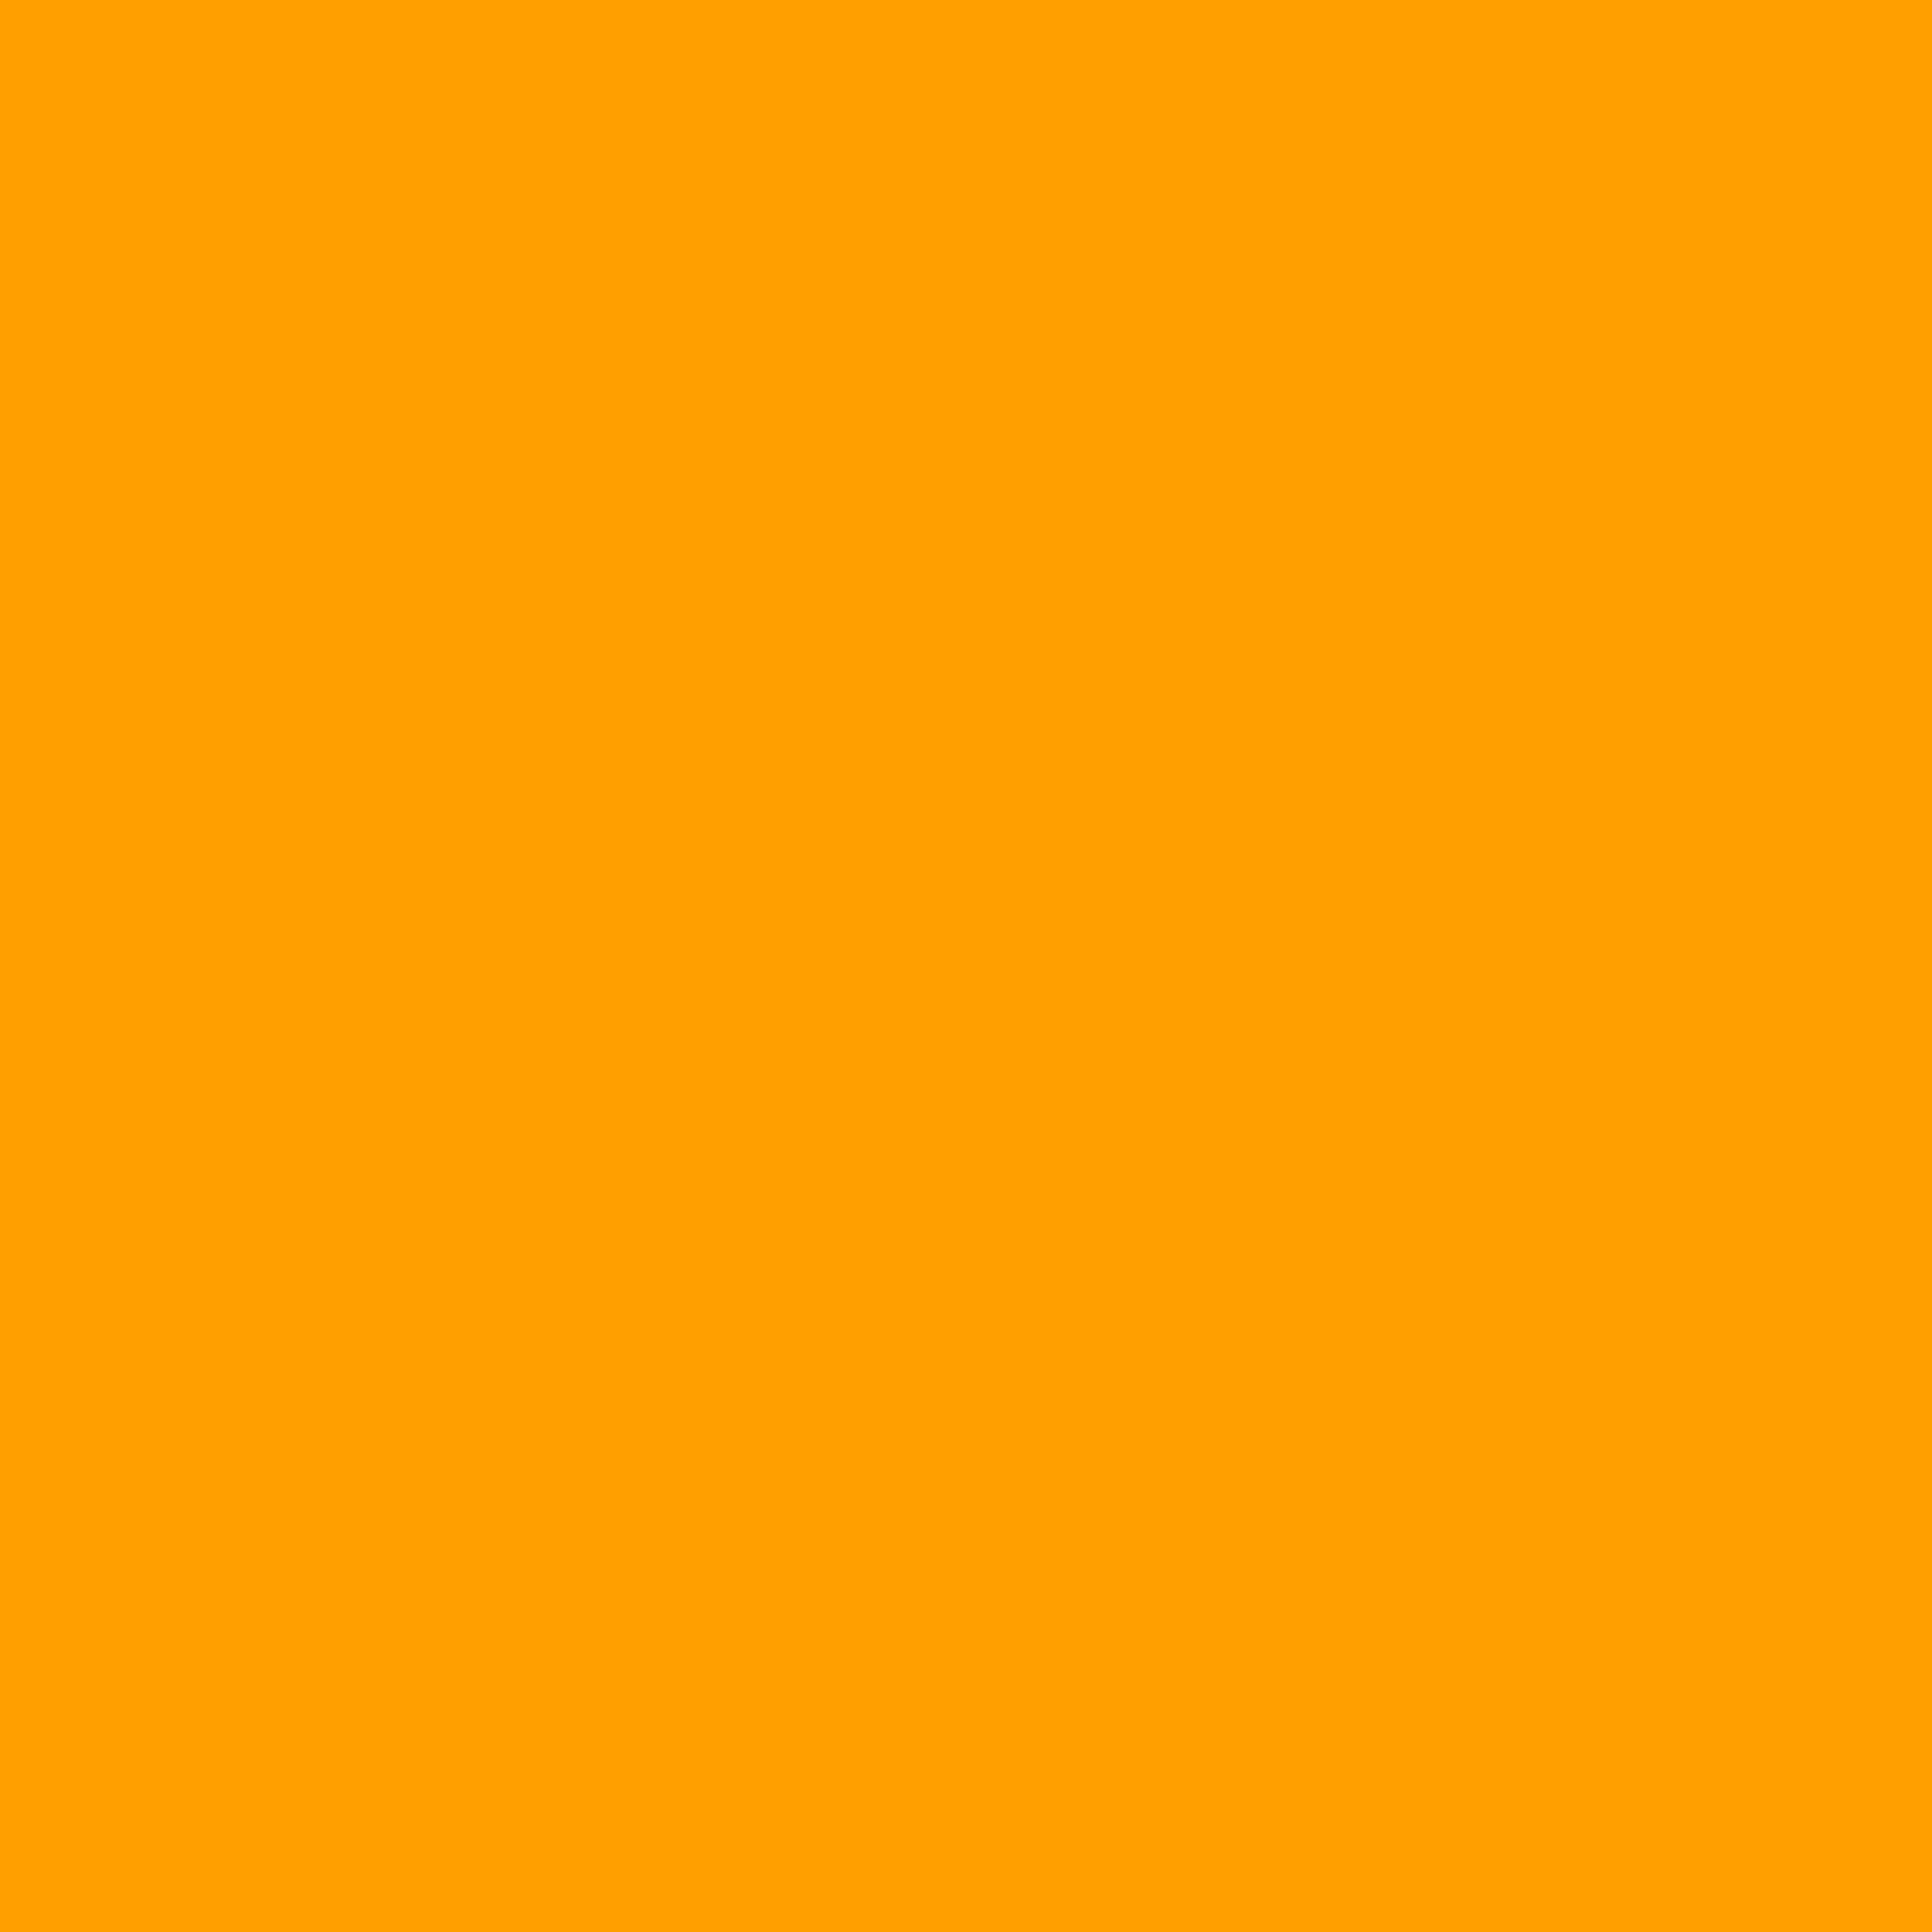 2732x2732 Orange Peel Solid Color Background